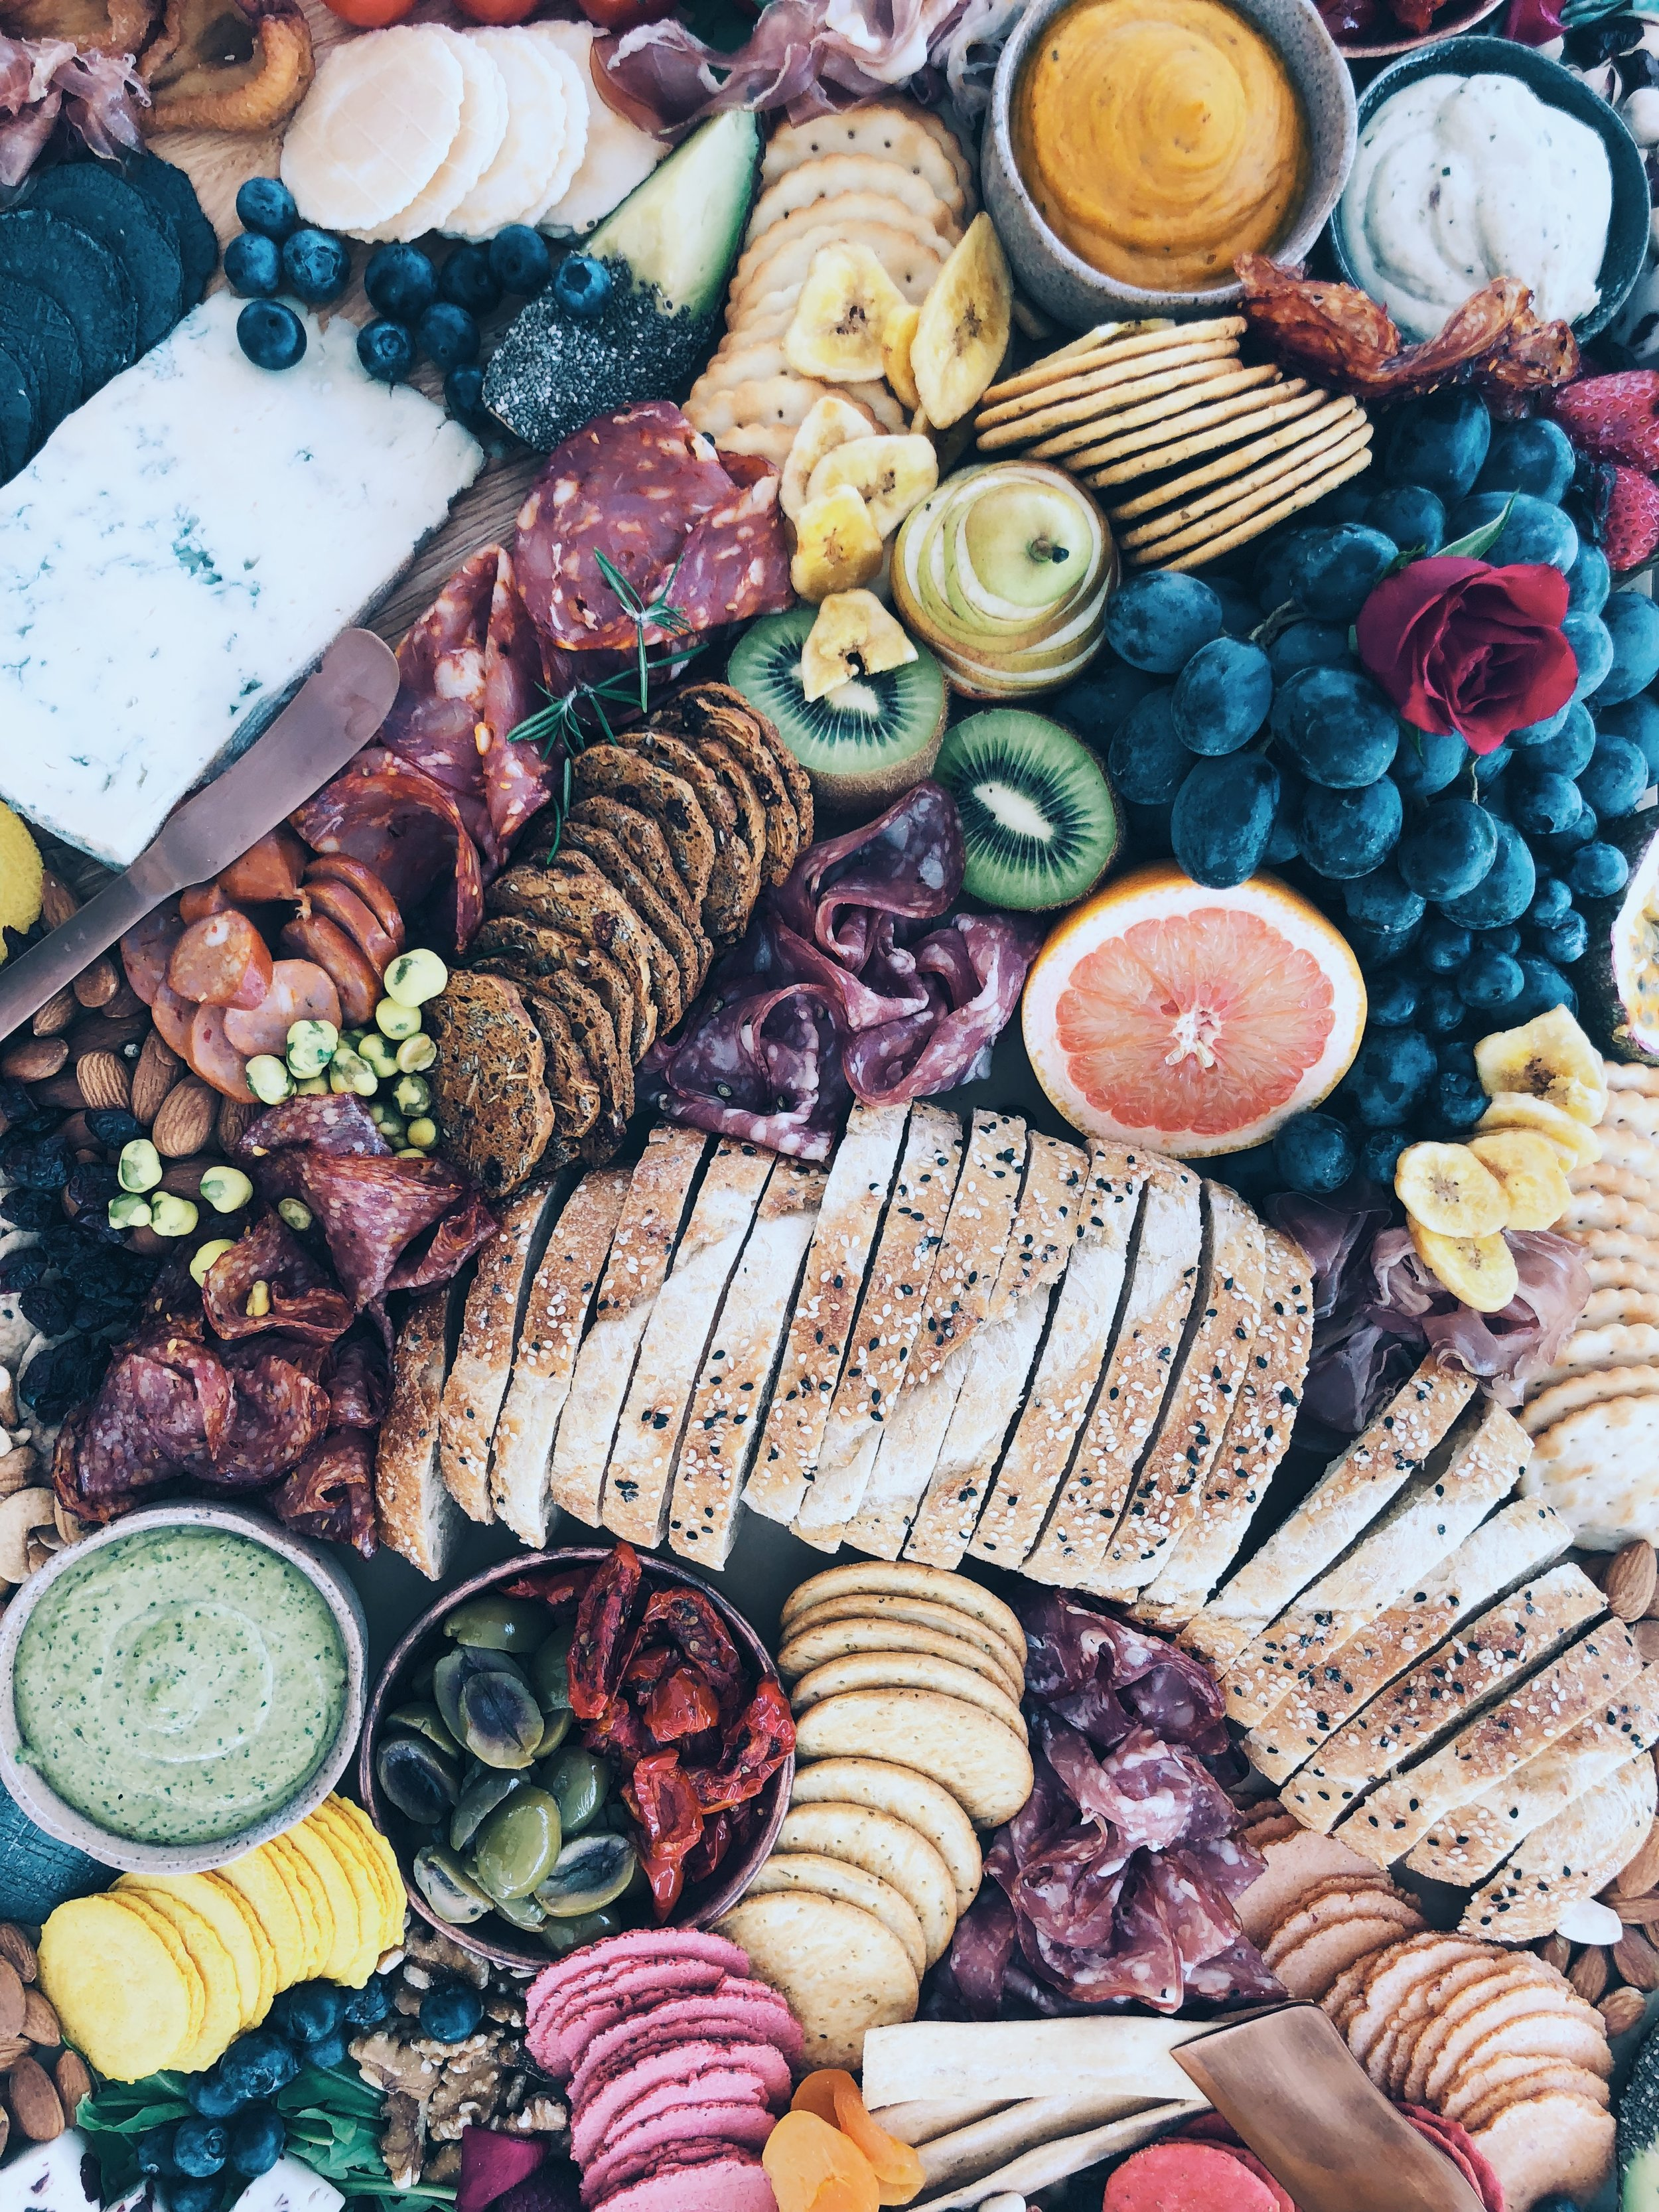 Take the stress out of your next event and get in contact with us!A Guilty Pleasure Platter will be sure to fill tummies and be the talk of your event! - So what are you waiting for? Drop us a line and we will get back to you as soon as we can!